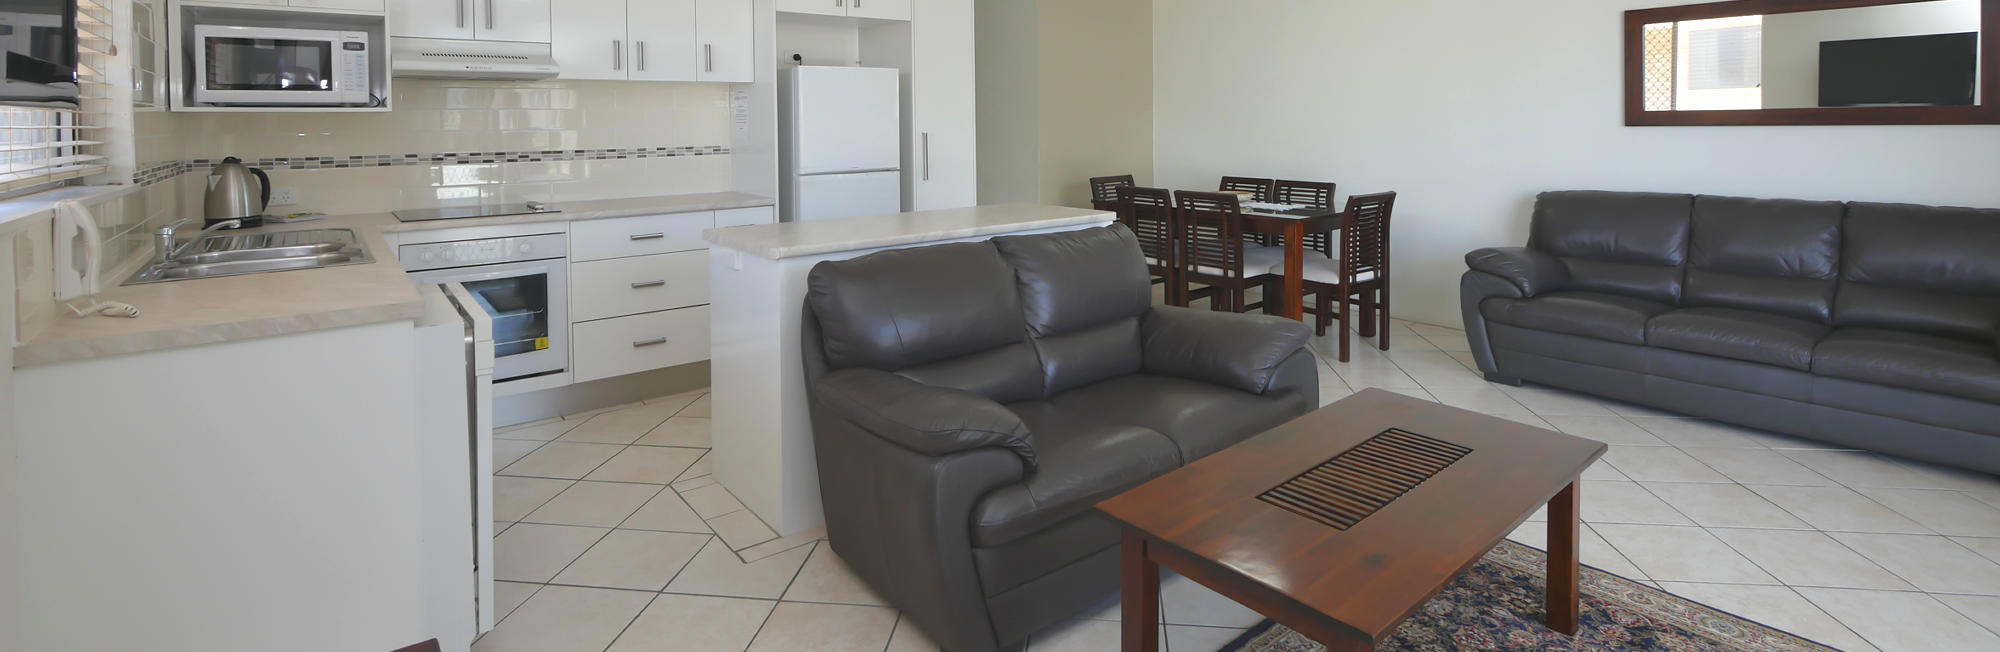 Merrima Court Kings Beach, Caloundra 4 Star Amenities